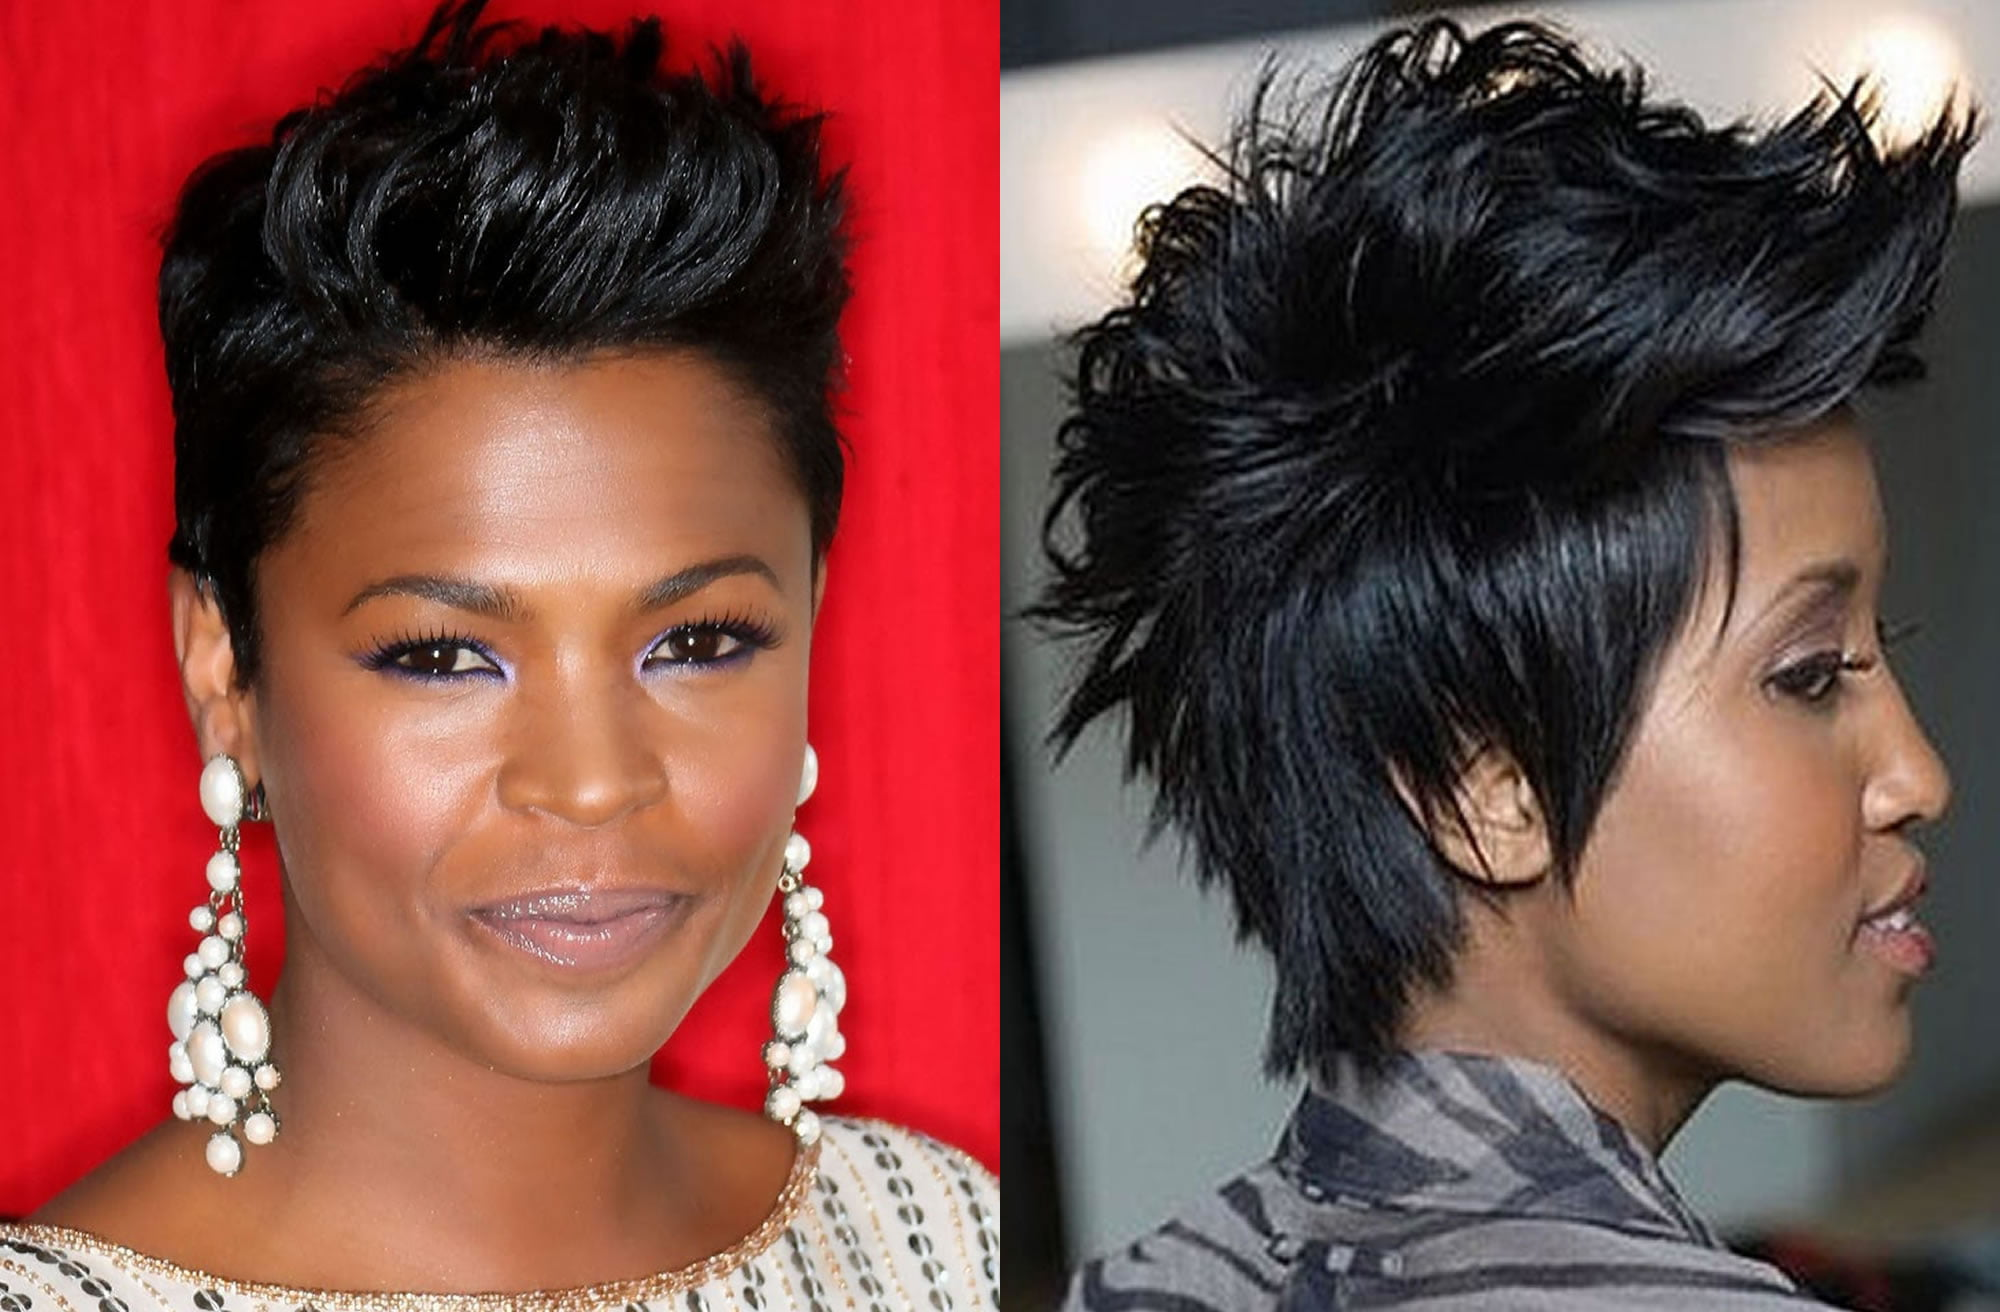 Hairstyles 2019: Pixie Short Haircuts For Black Women 2018-2019